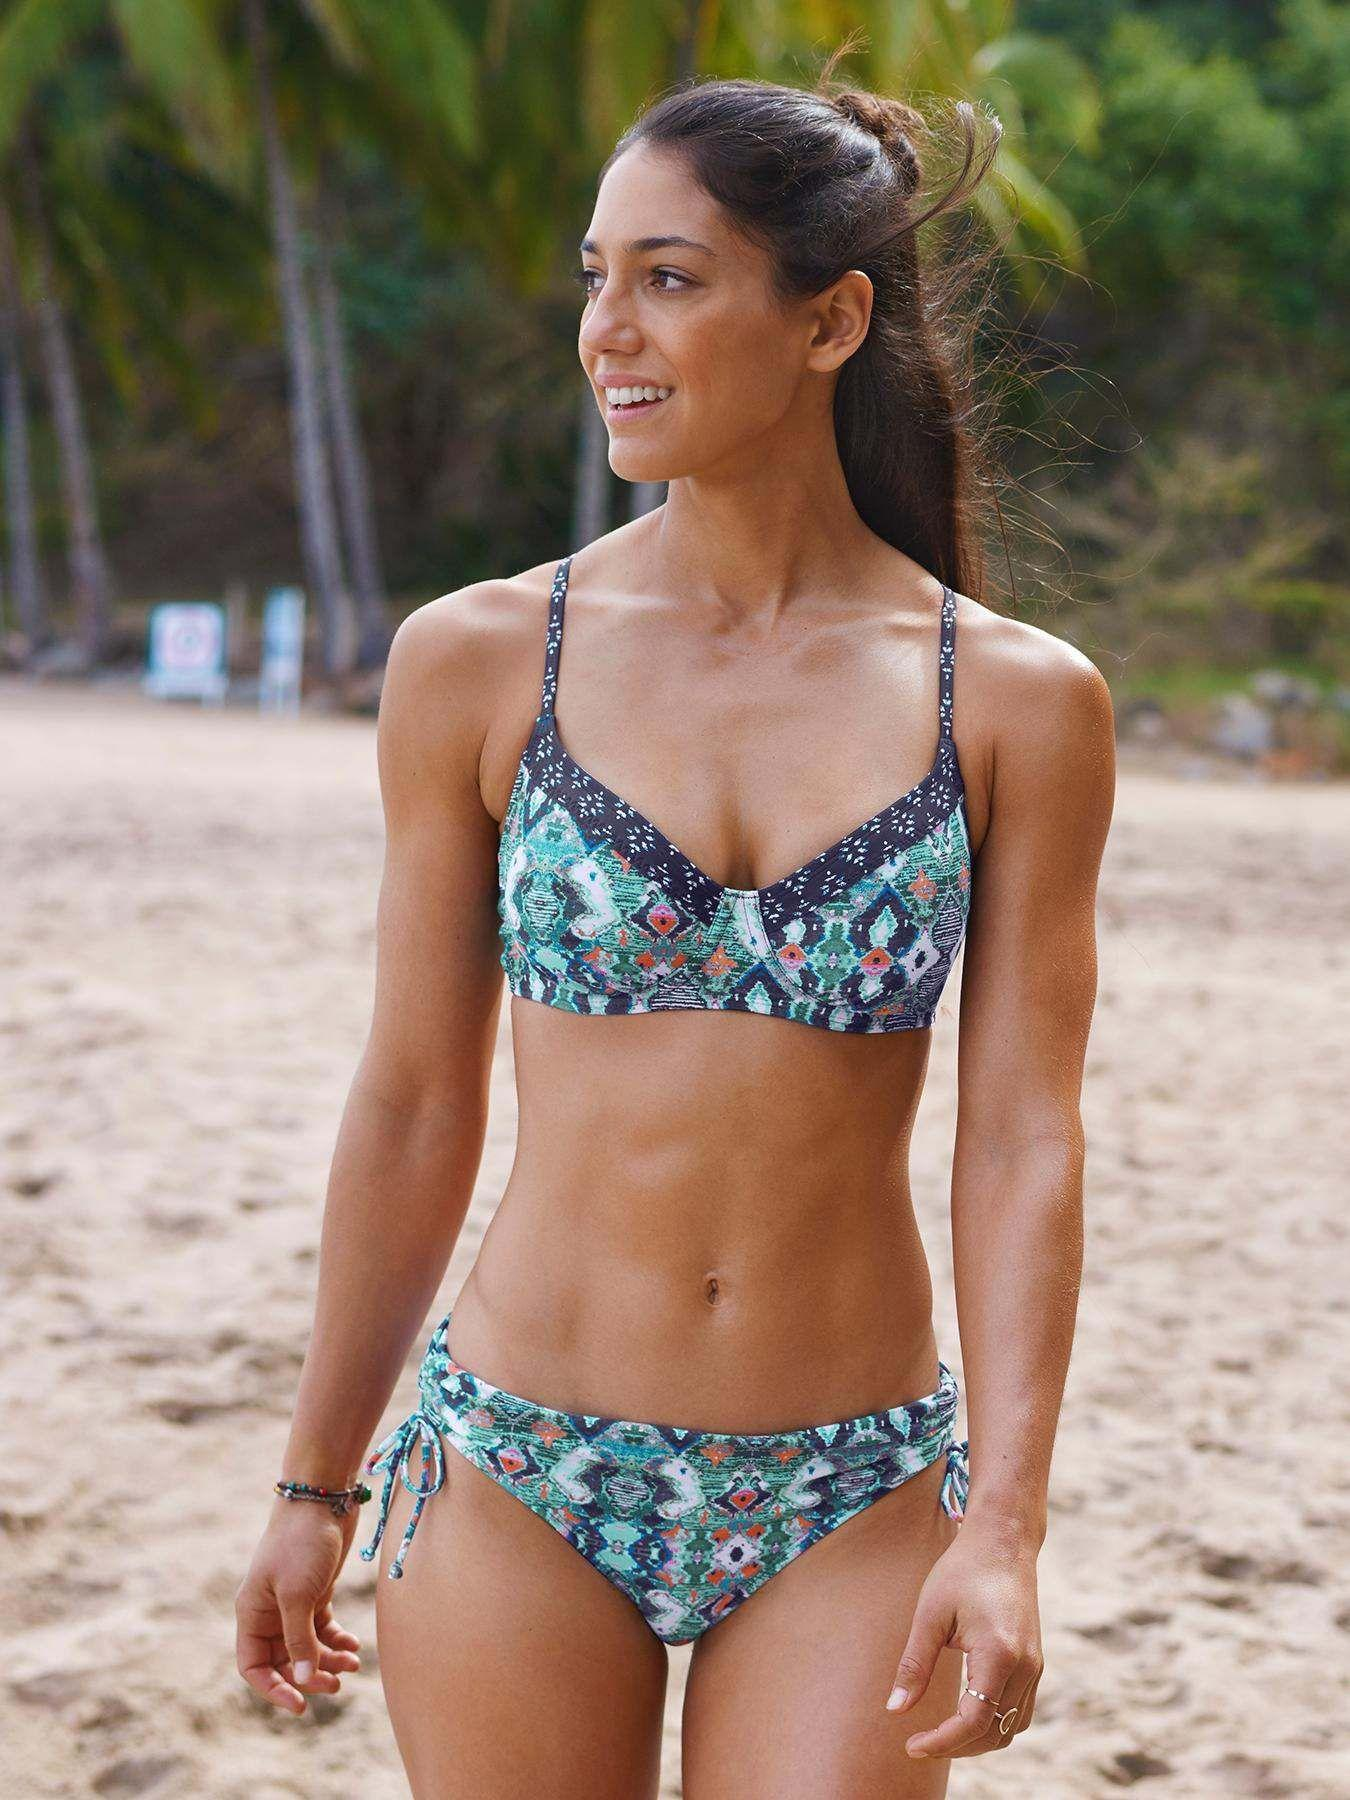 Allison Stokke sexy cleavage pics